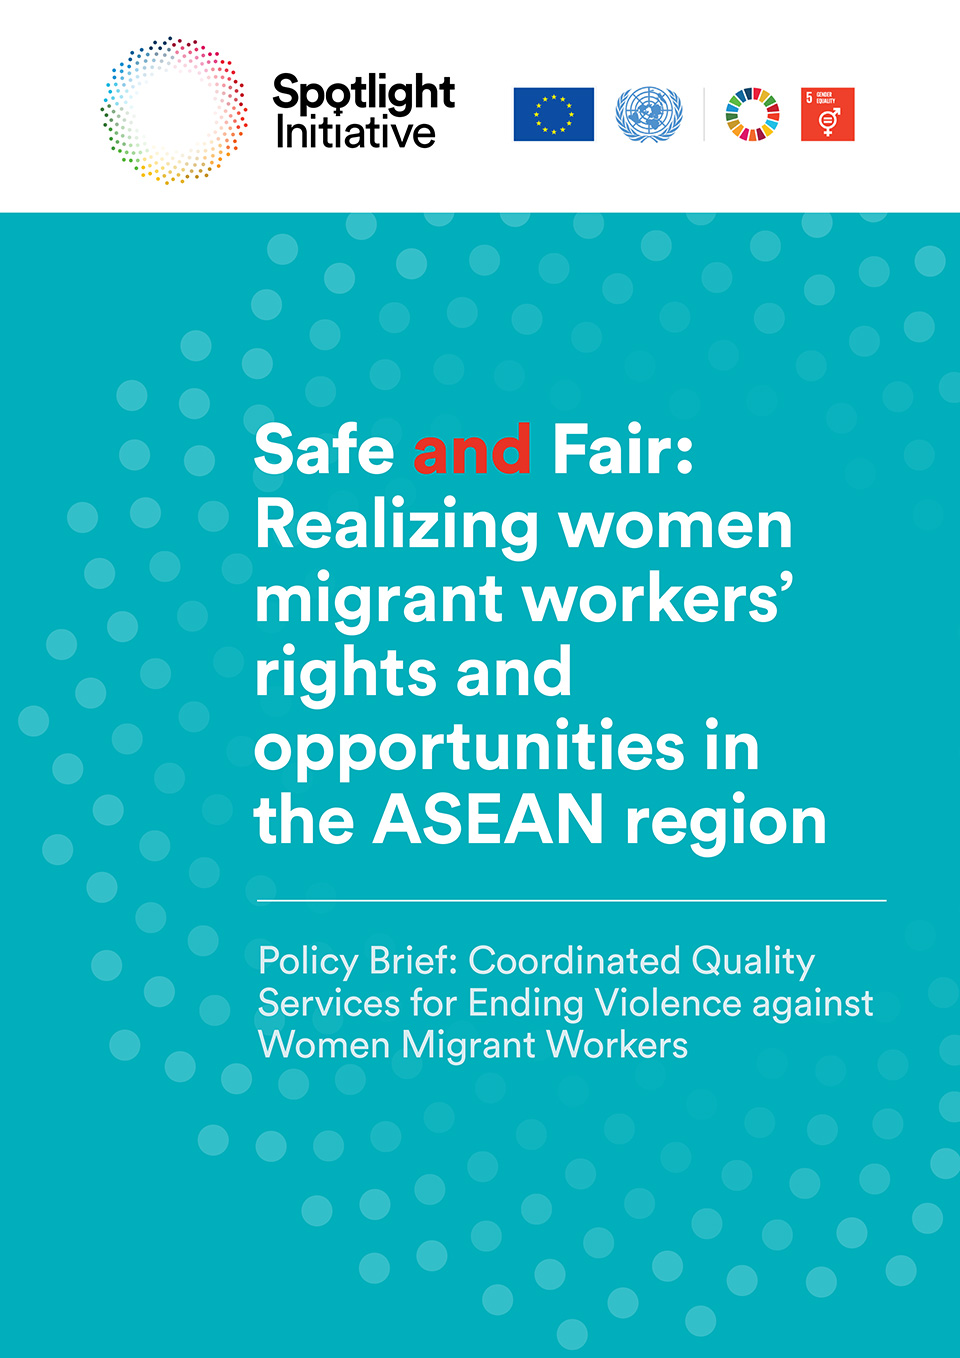 Coordinated Quality Services for Ending Violence against Women Migrant Workers